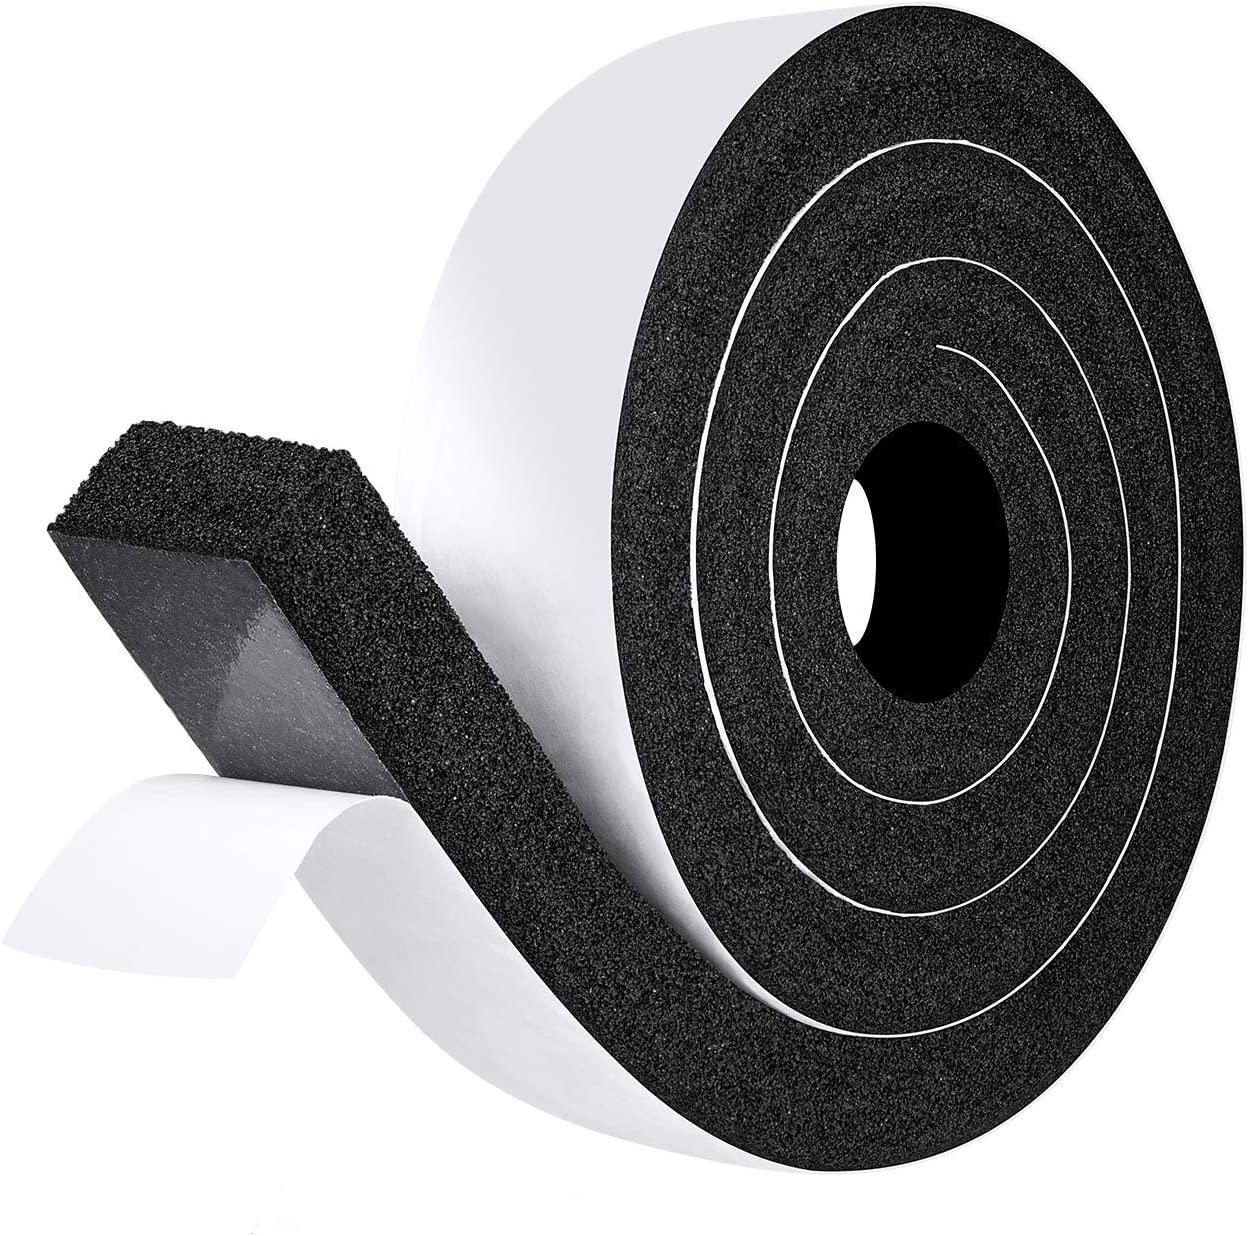 "fowong Air Conditioner Foam Gasket Seal, 2"" W X 1"" T X 6.5' L, Thick Window Insulation Seal Low Density Foam Strip Shock-Absorbing Anti-Vibration, 1 Roll X 6.5 Ft"